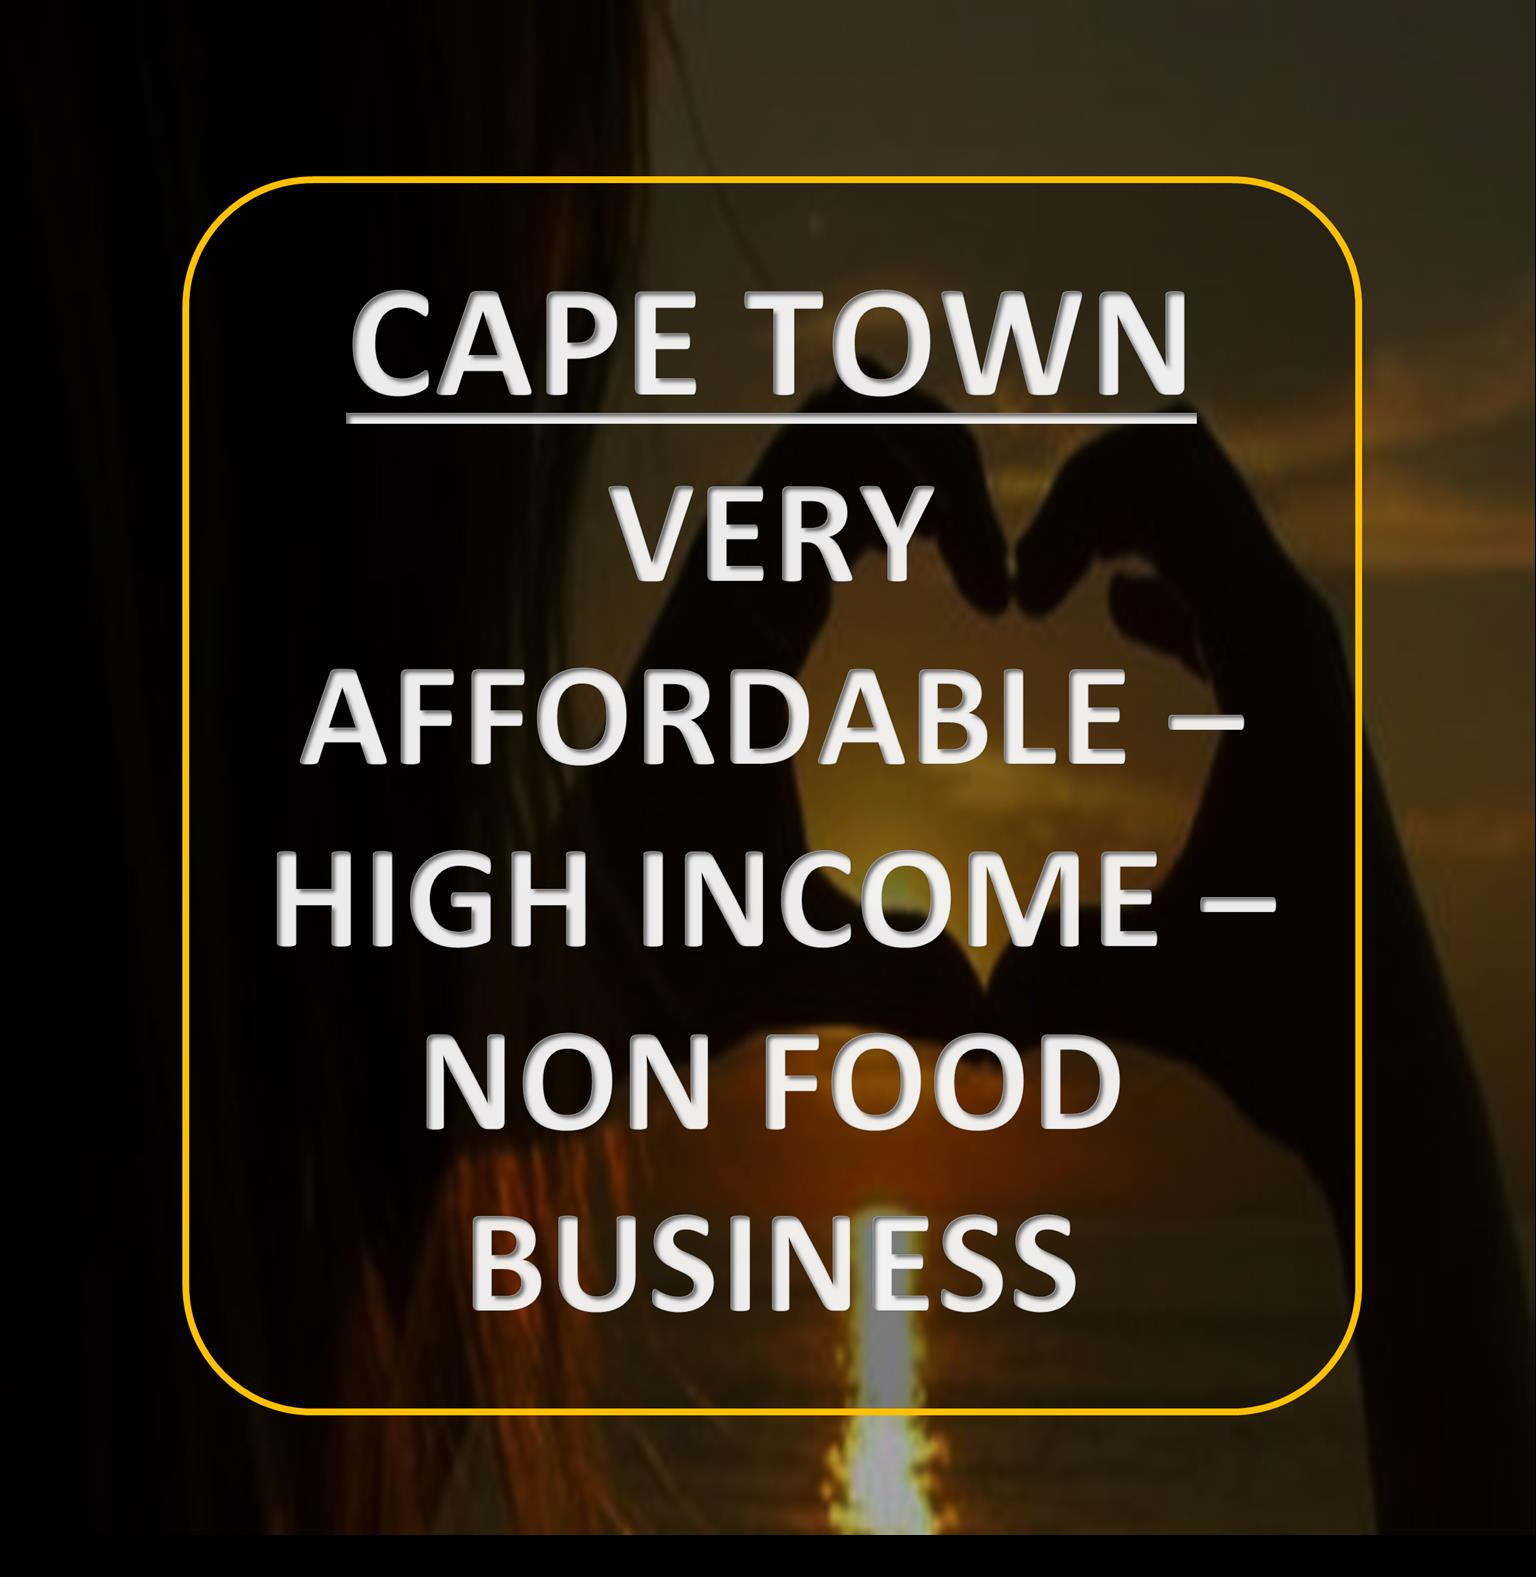 CAPE TOWN - HOME BASED - LOW COST - HIGH INCOME - SALES AND MARKETING BUSINESS